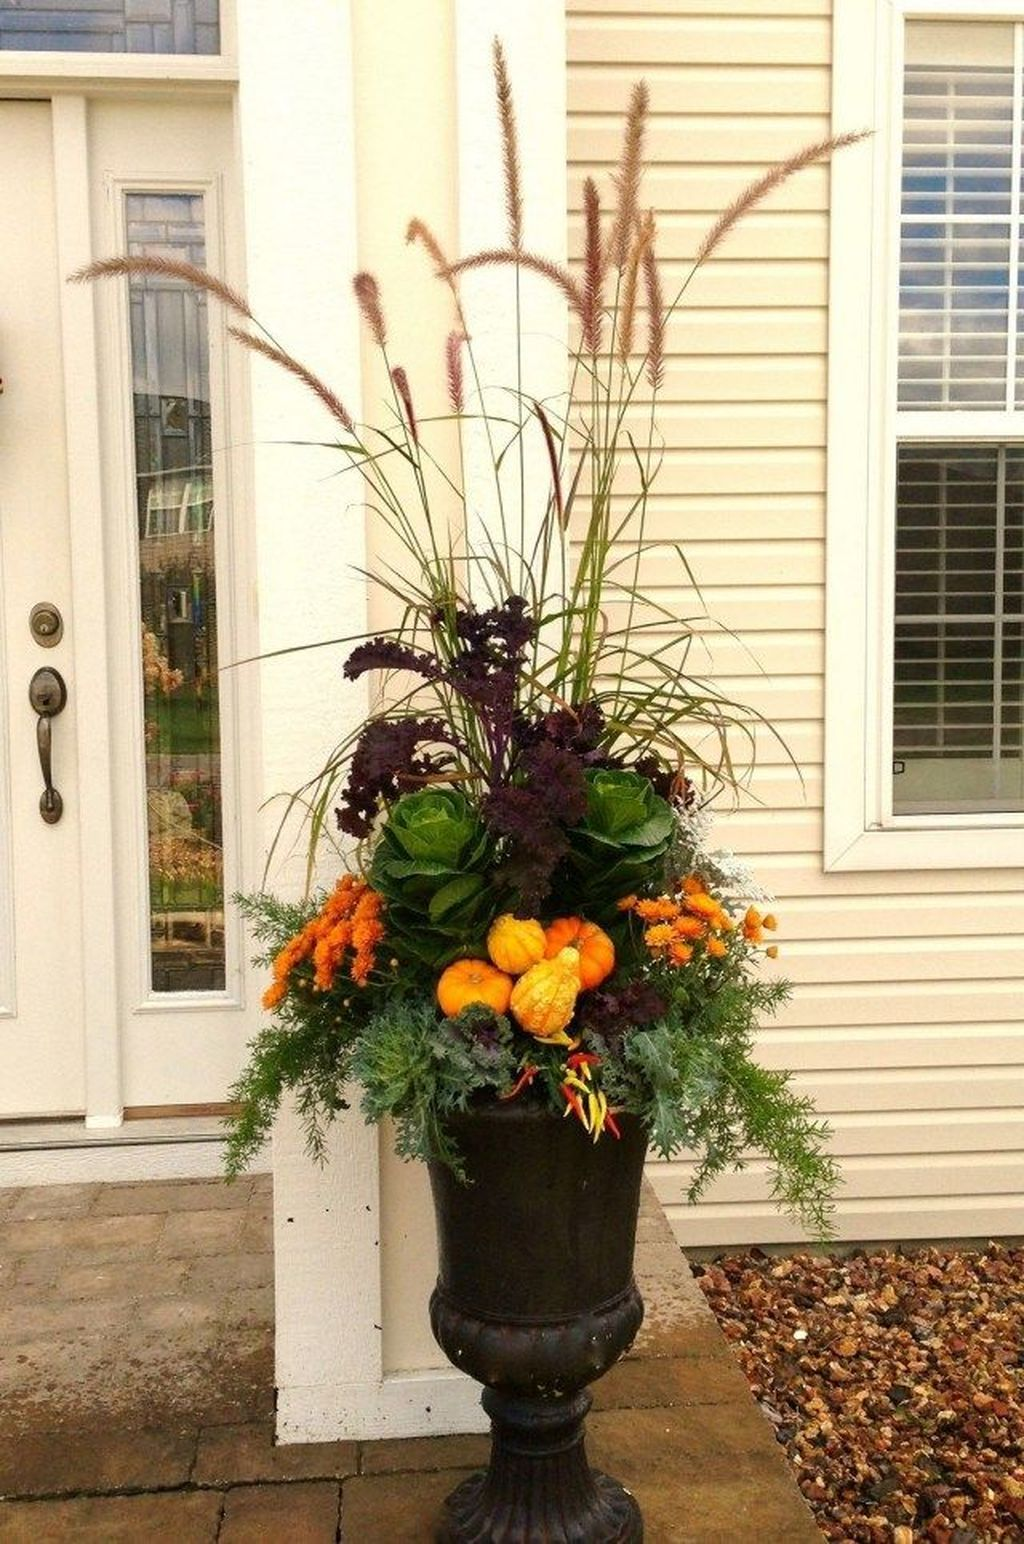 33 Amazing Fall Planter Ideas Best For Front Porches 33 Amazing Fall Planter Ideas Best For Front Porches